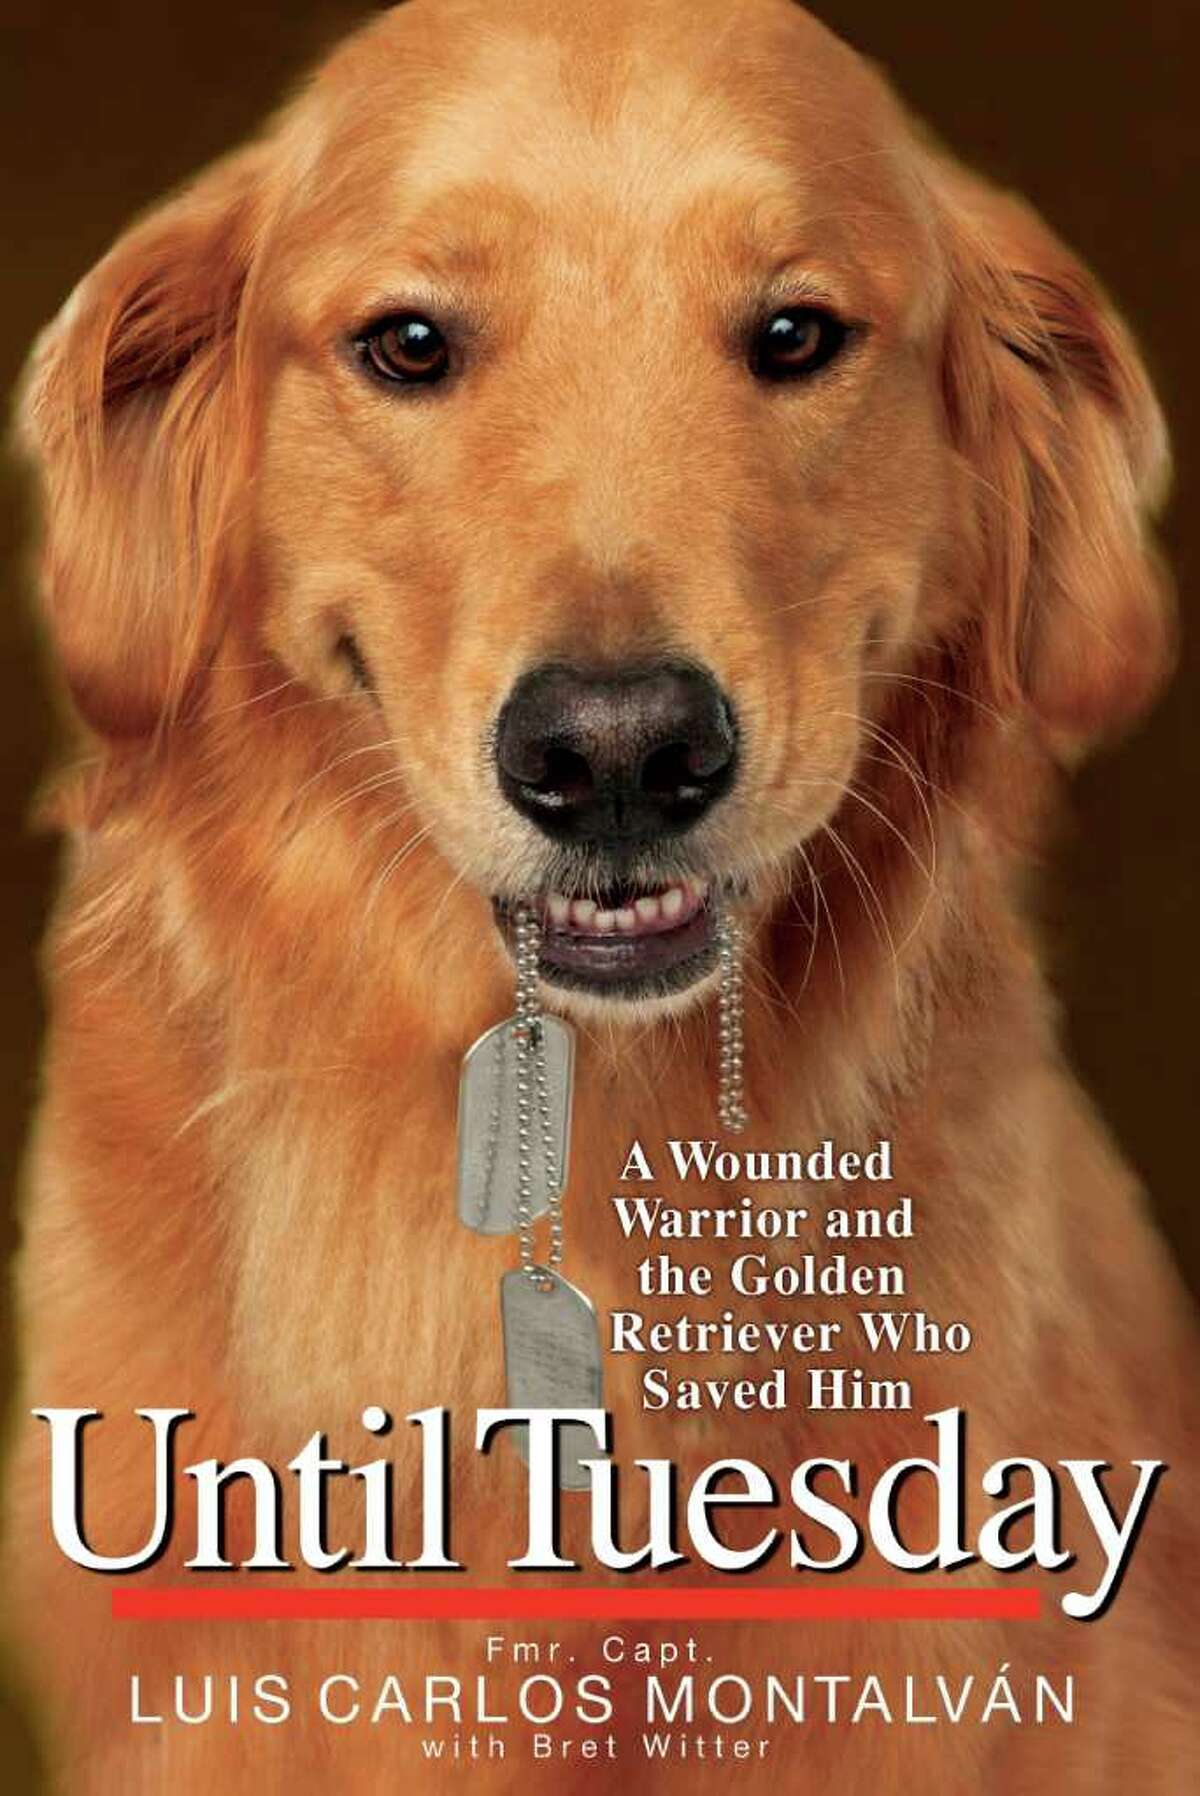 cover for Until Tuesday: A Wounded Warrior and the Golden Retriever Who Saved Him by Luis Carlos Montalvan with Bret Witter (Hyperion, $22.99)